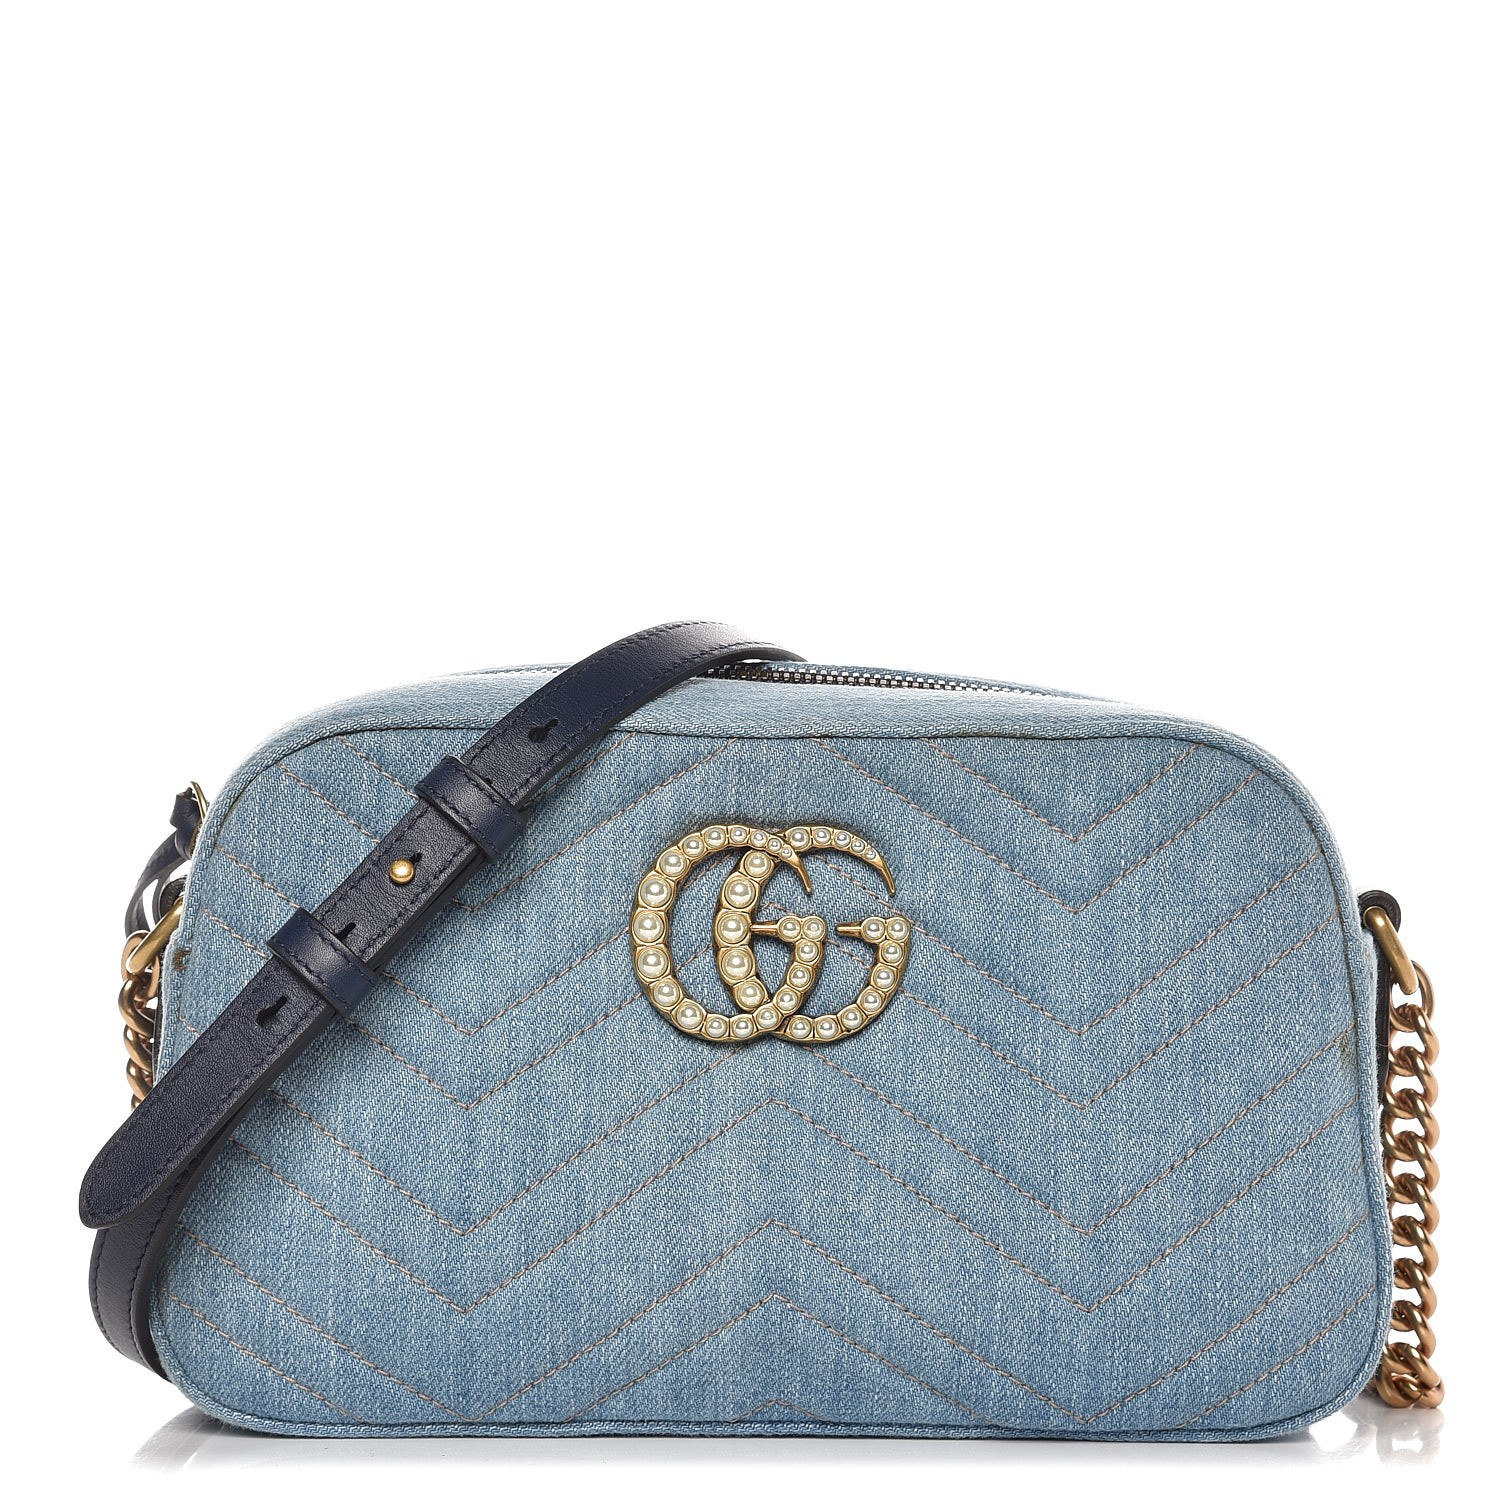 7d5321e4df3d GUCCI Denim Matelasse Pearl Studded Small GG Marmont Chain Shoulder Bag  Blue 266755